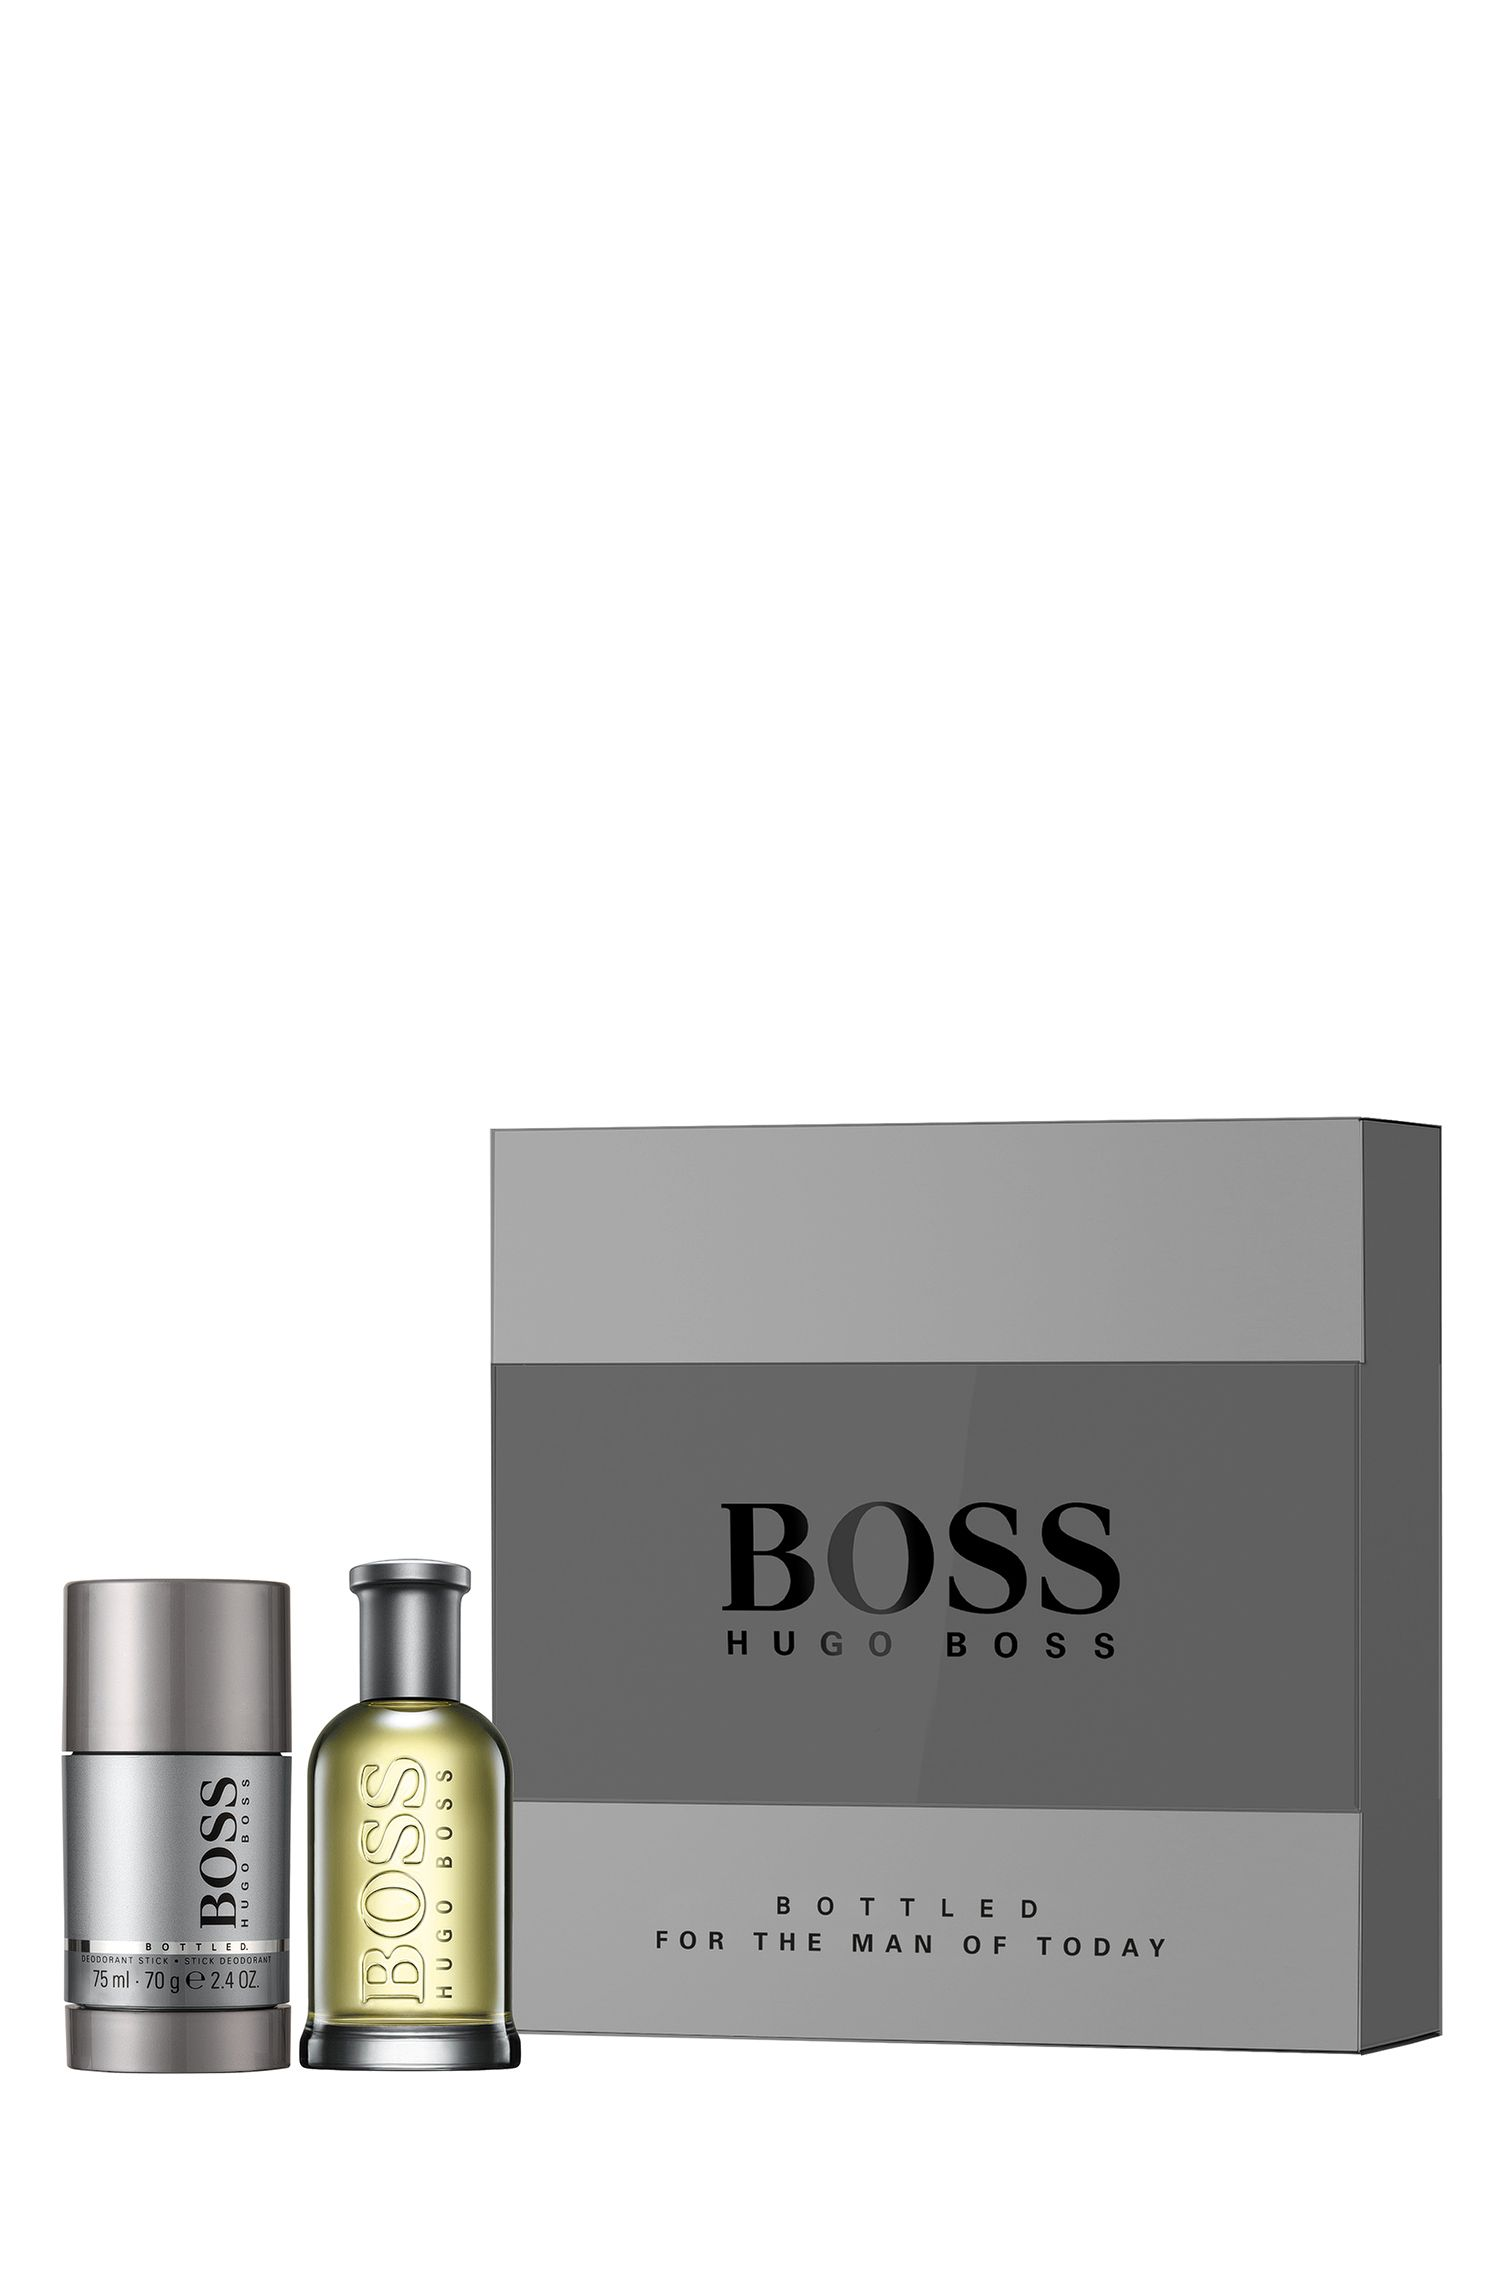 Set de regalo con Eau de Toilette 'BOSS Bottled' 50 ml y desodorante en barra